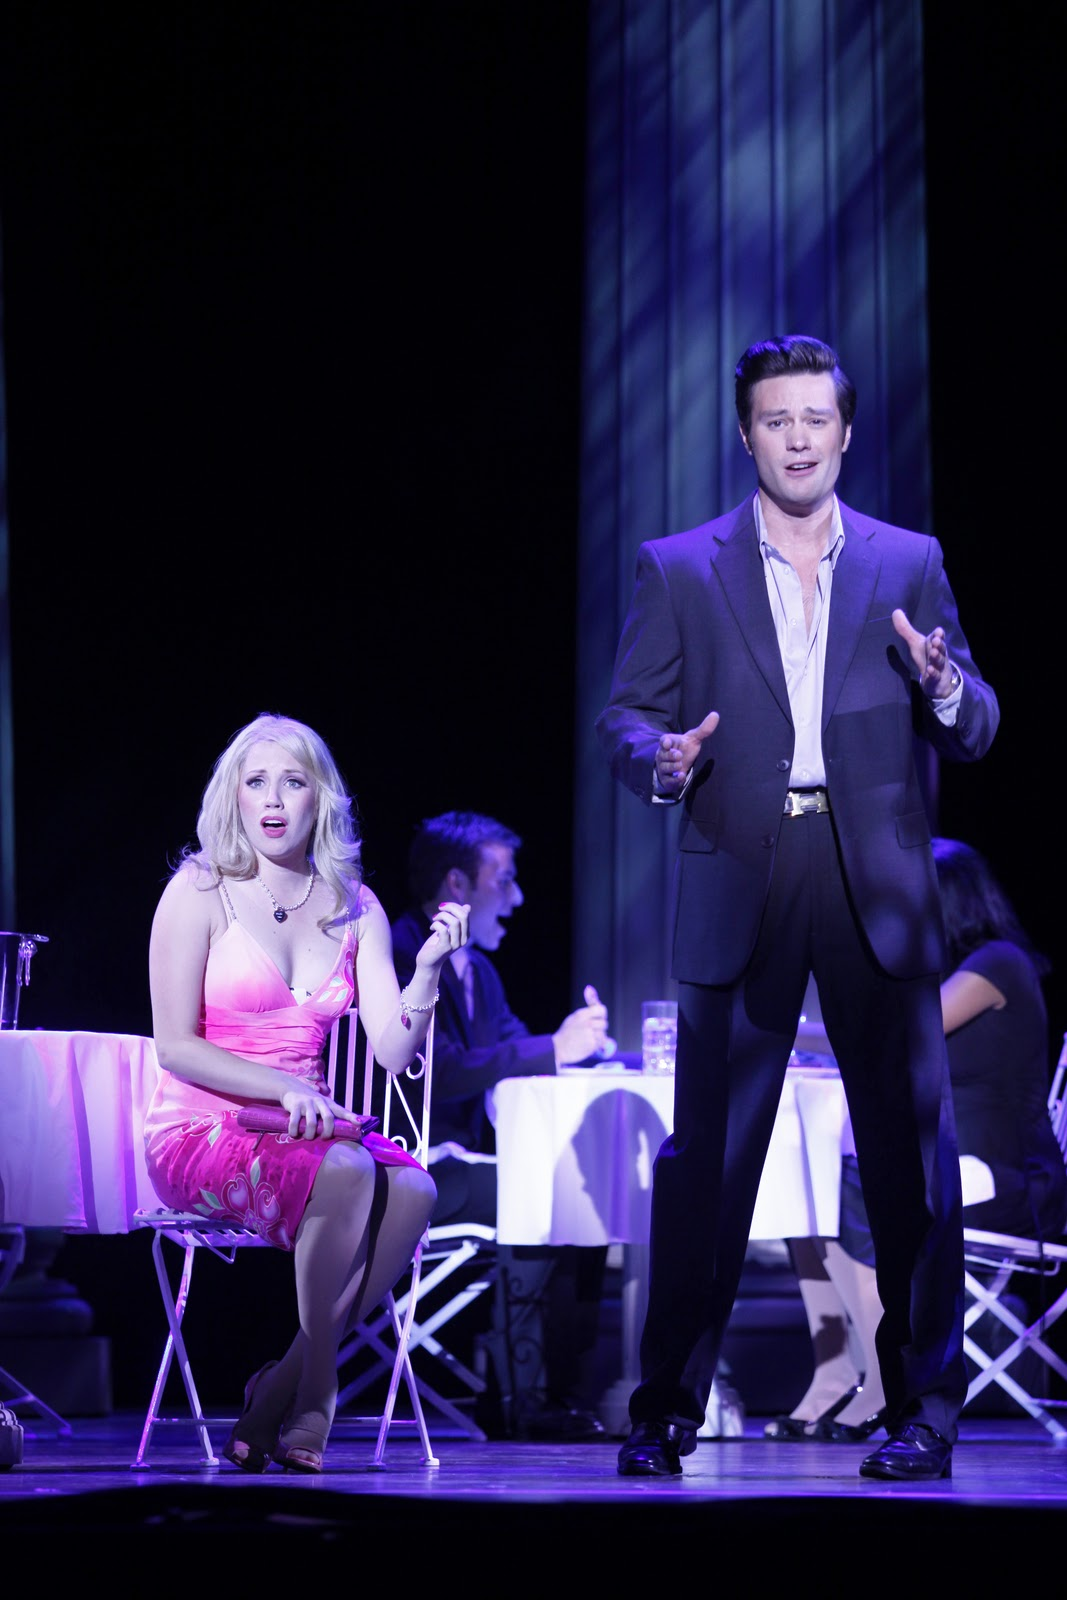 4ed0f7b5ef25a ... and now LEGALLY BLONDE THE MUSICAL is coming to you. LEGALLY BLONDE  follows sorority star Elle Woods